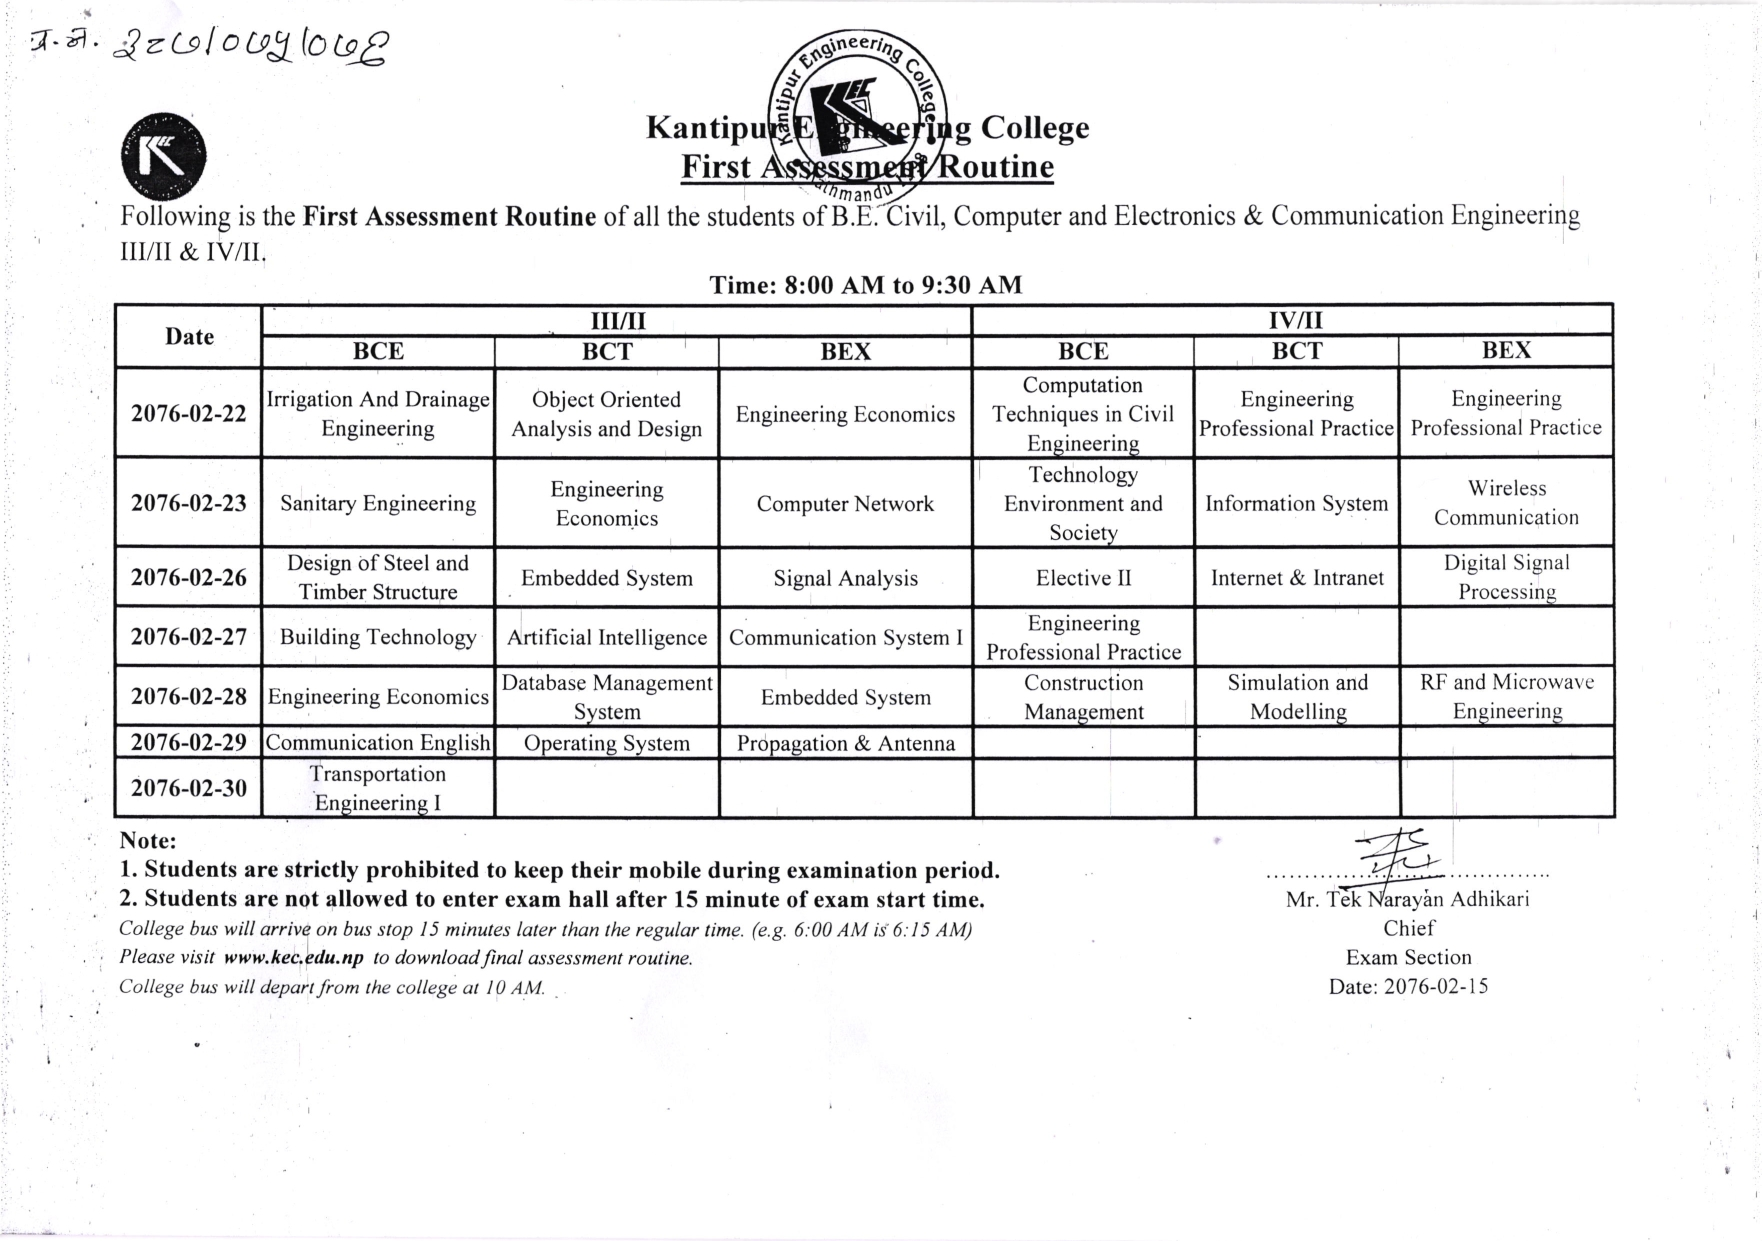 First Assessment Routine 2076 Jestha photocopy_002